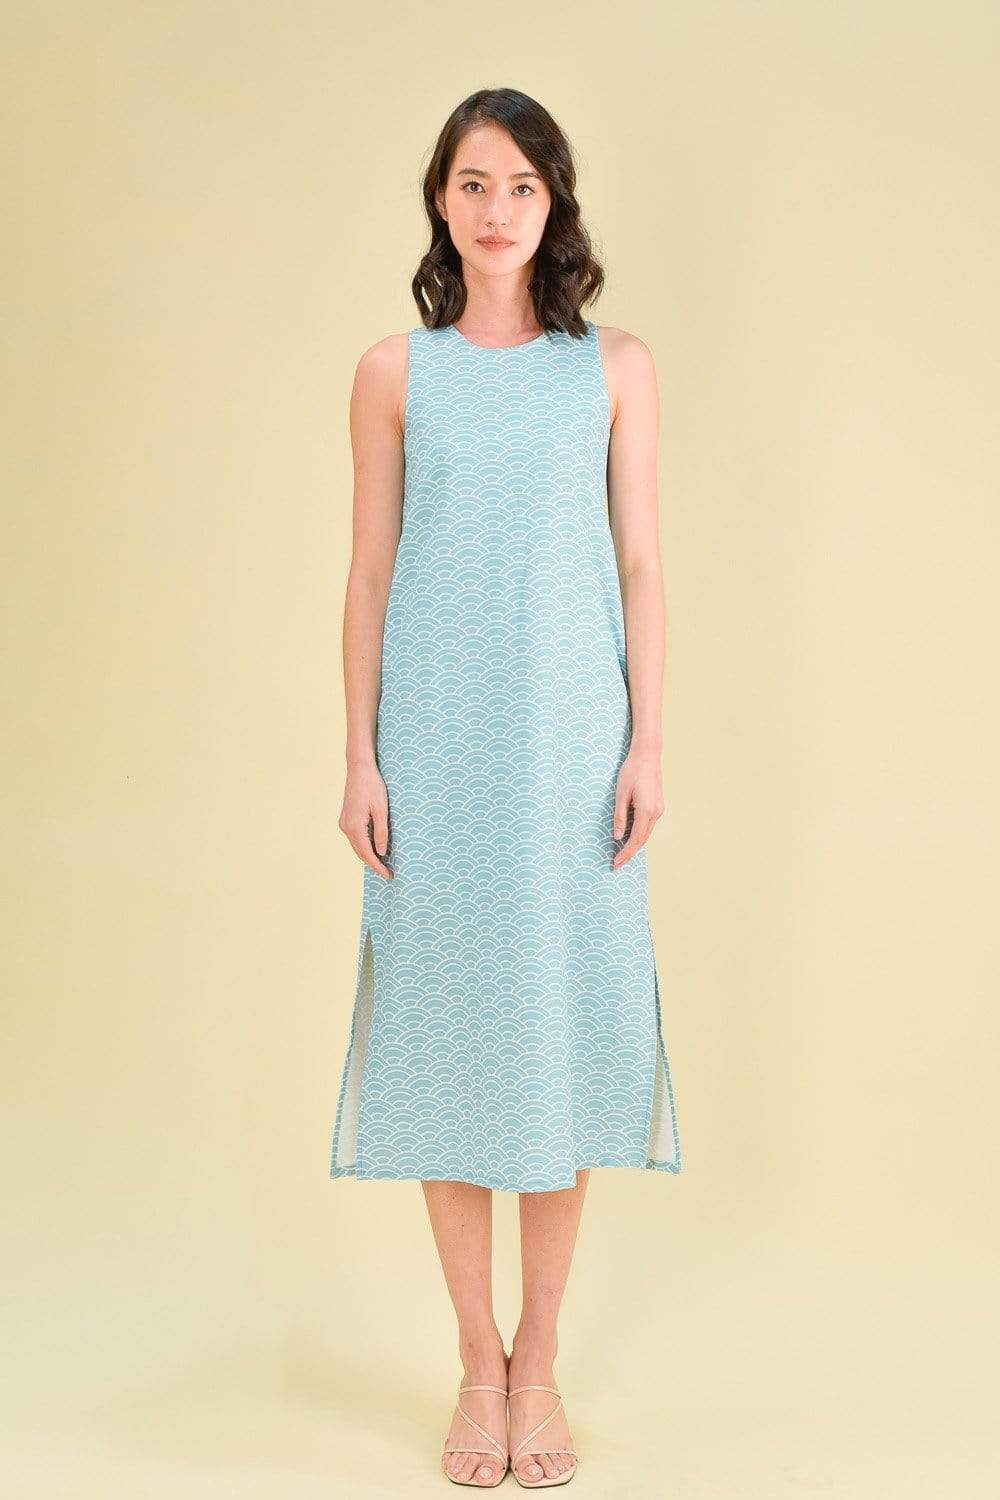 AOI SIDE-SLIT MIDI IN SEAFOAM